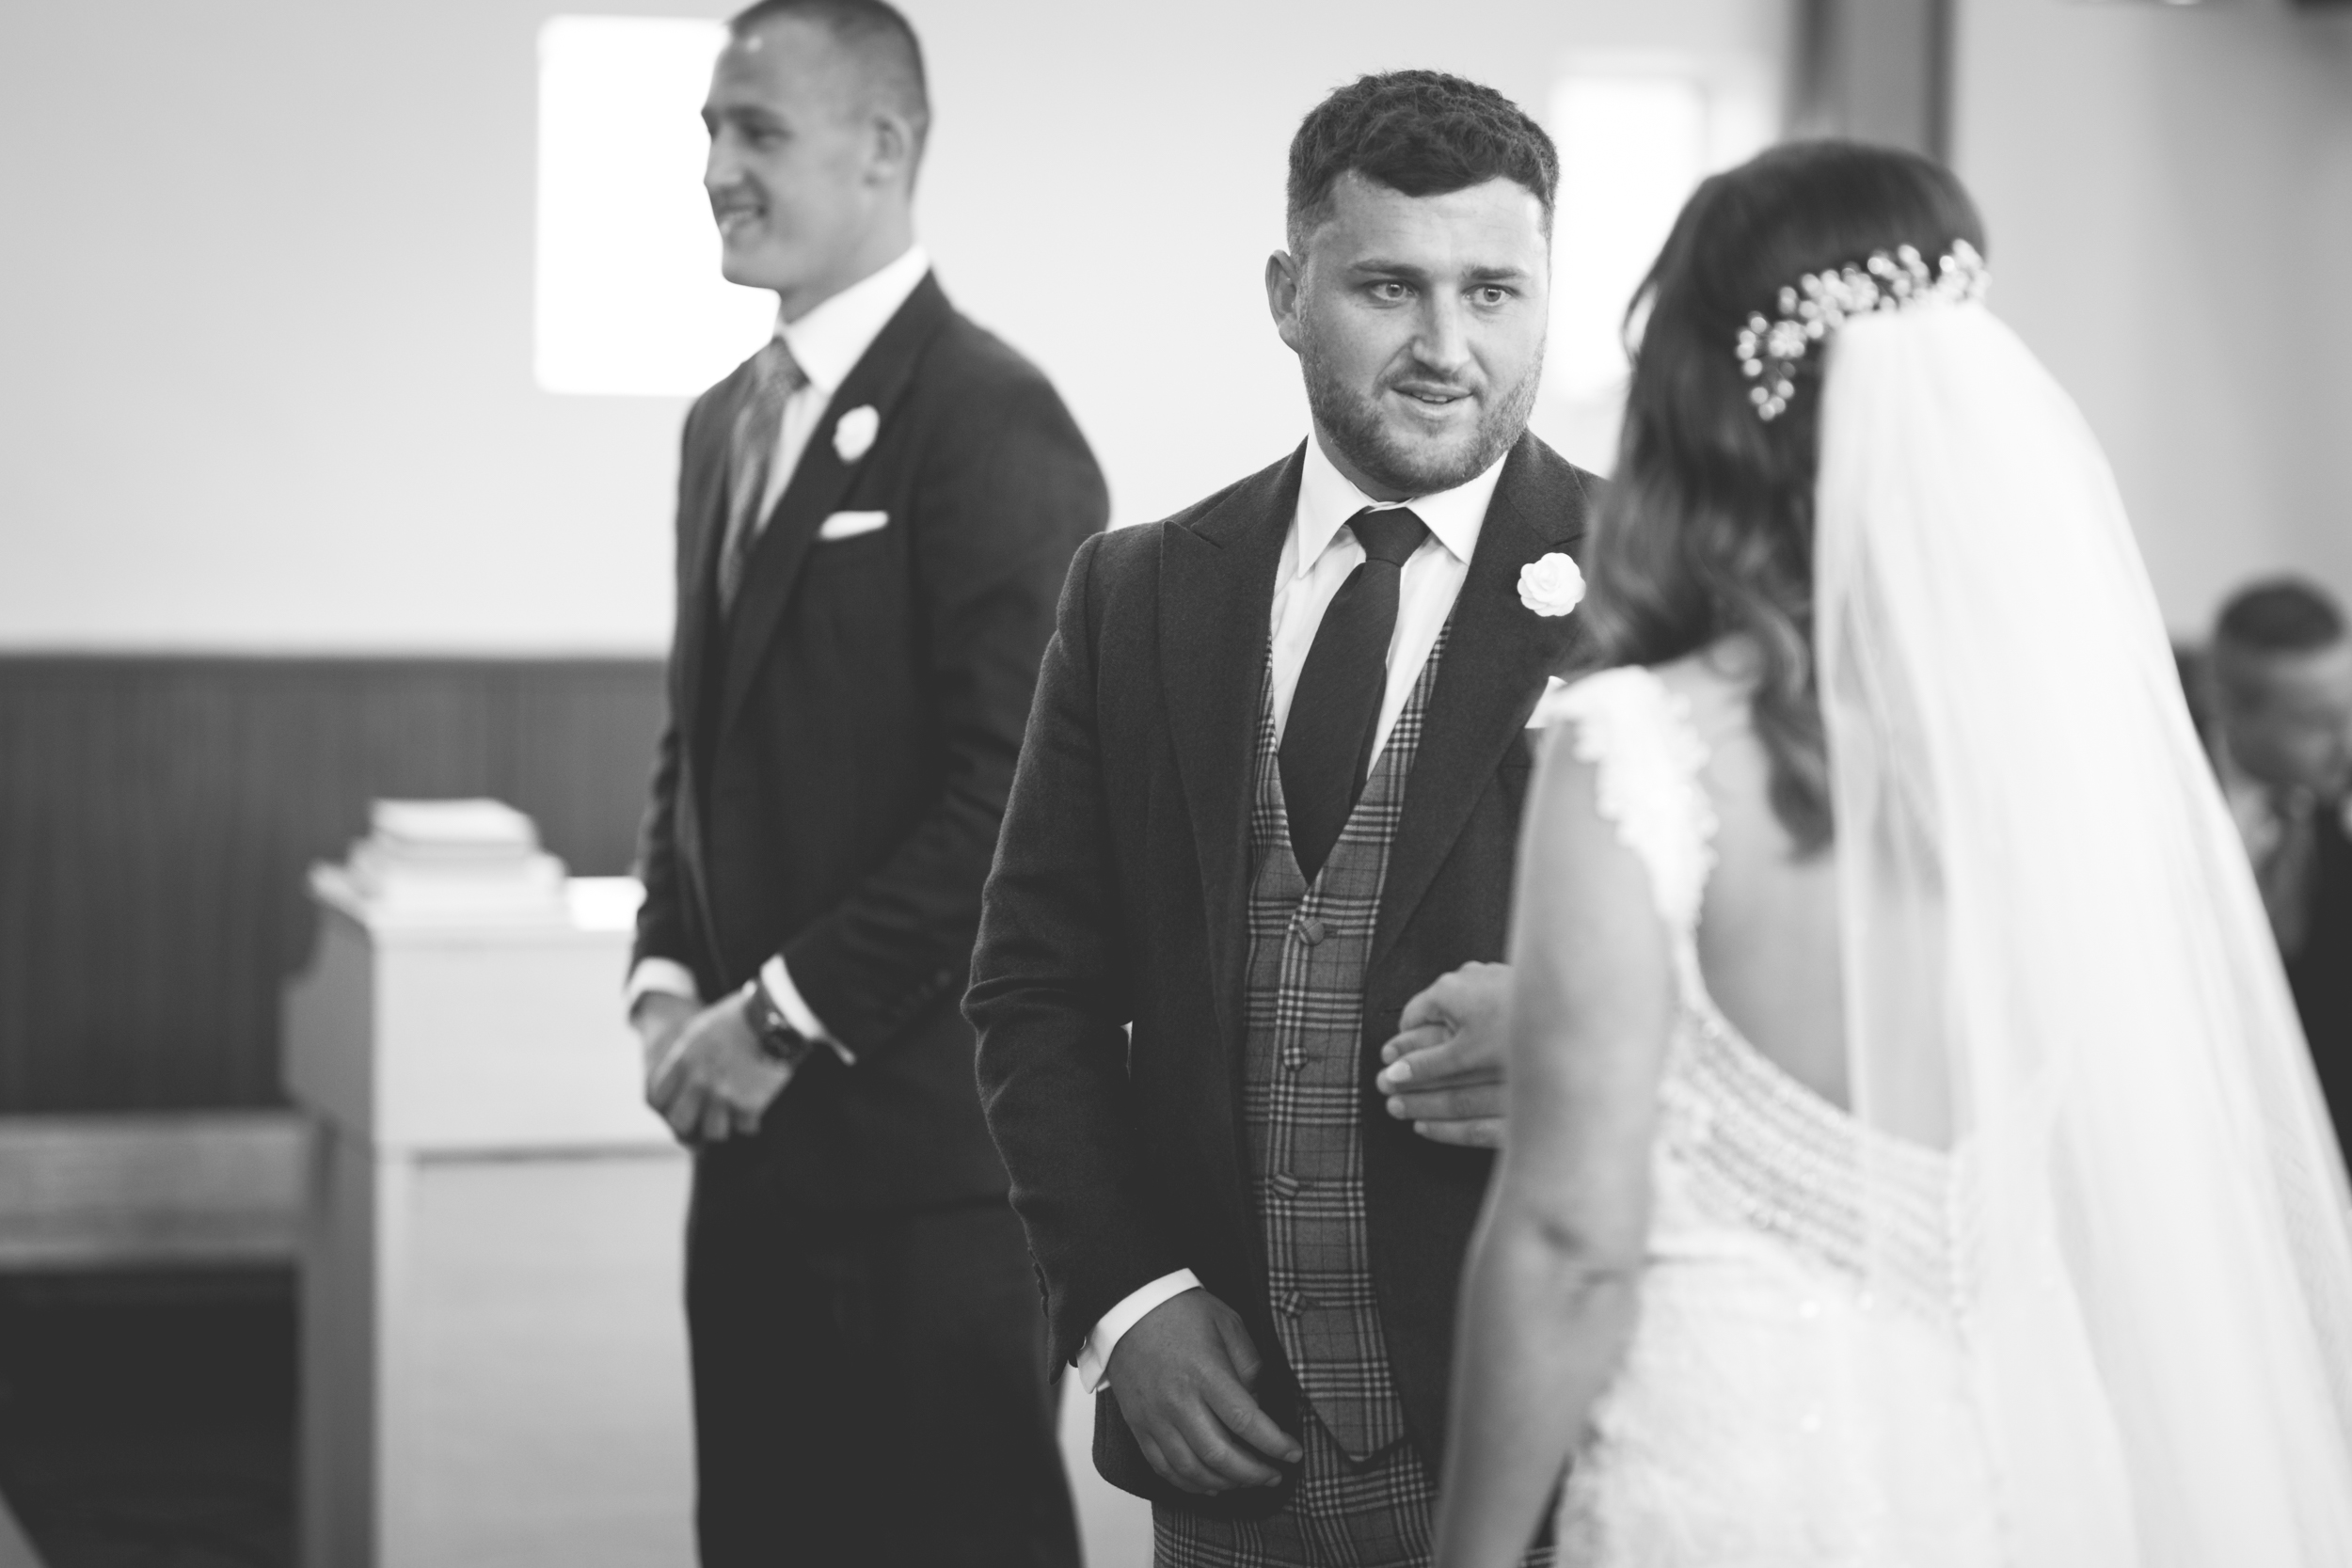 Brian McEwan | Northern Ireland Wedding Photographer | Rebecca & Michael | Ceremony-29.jpg